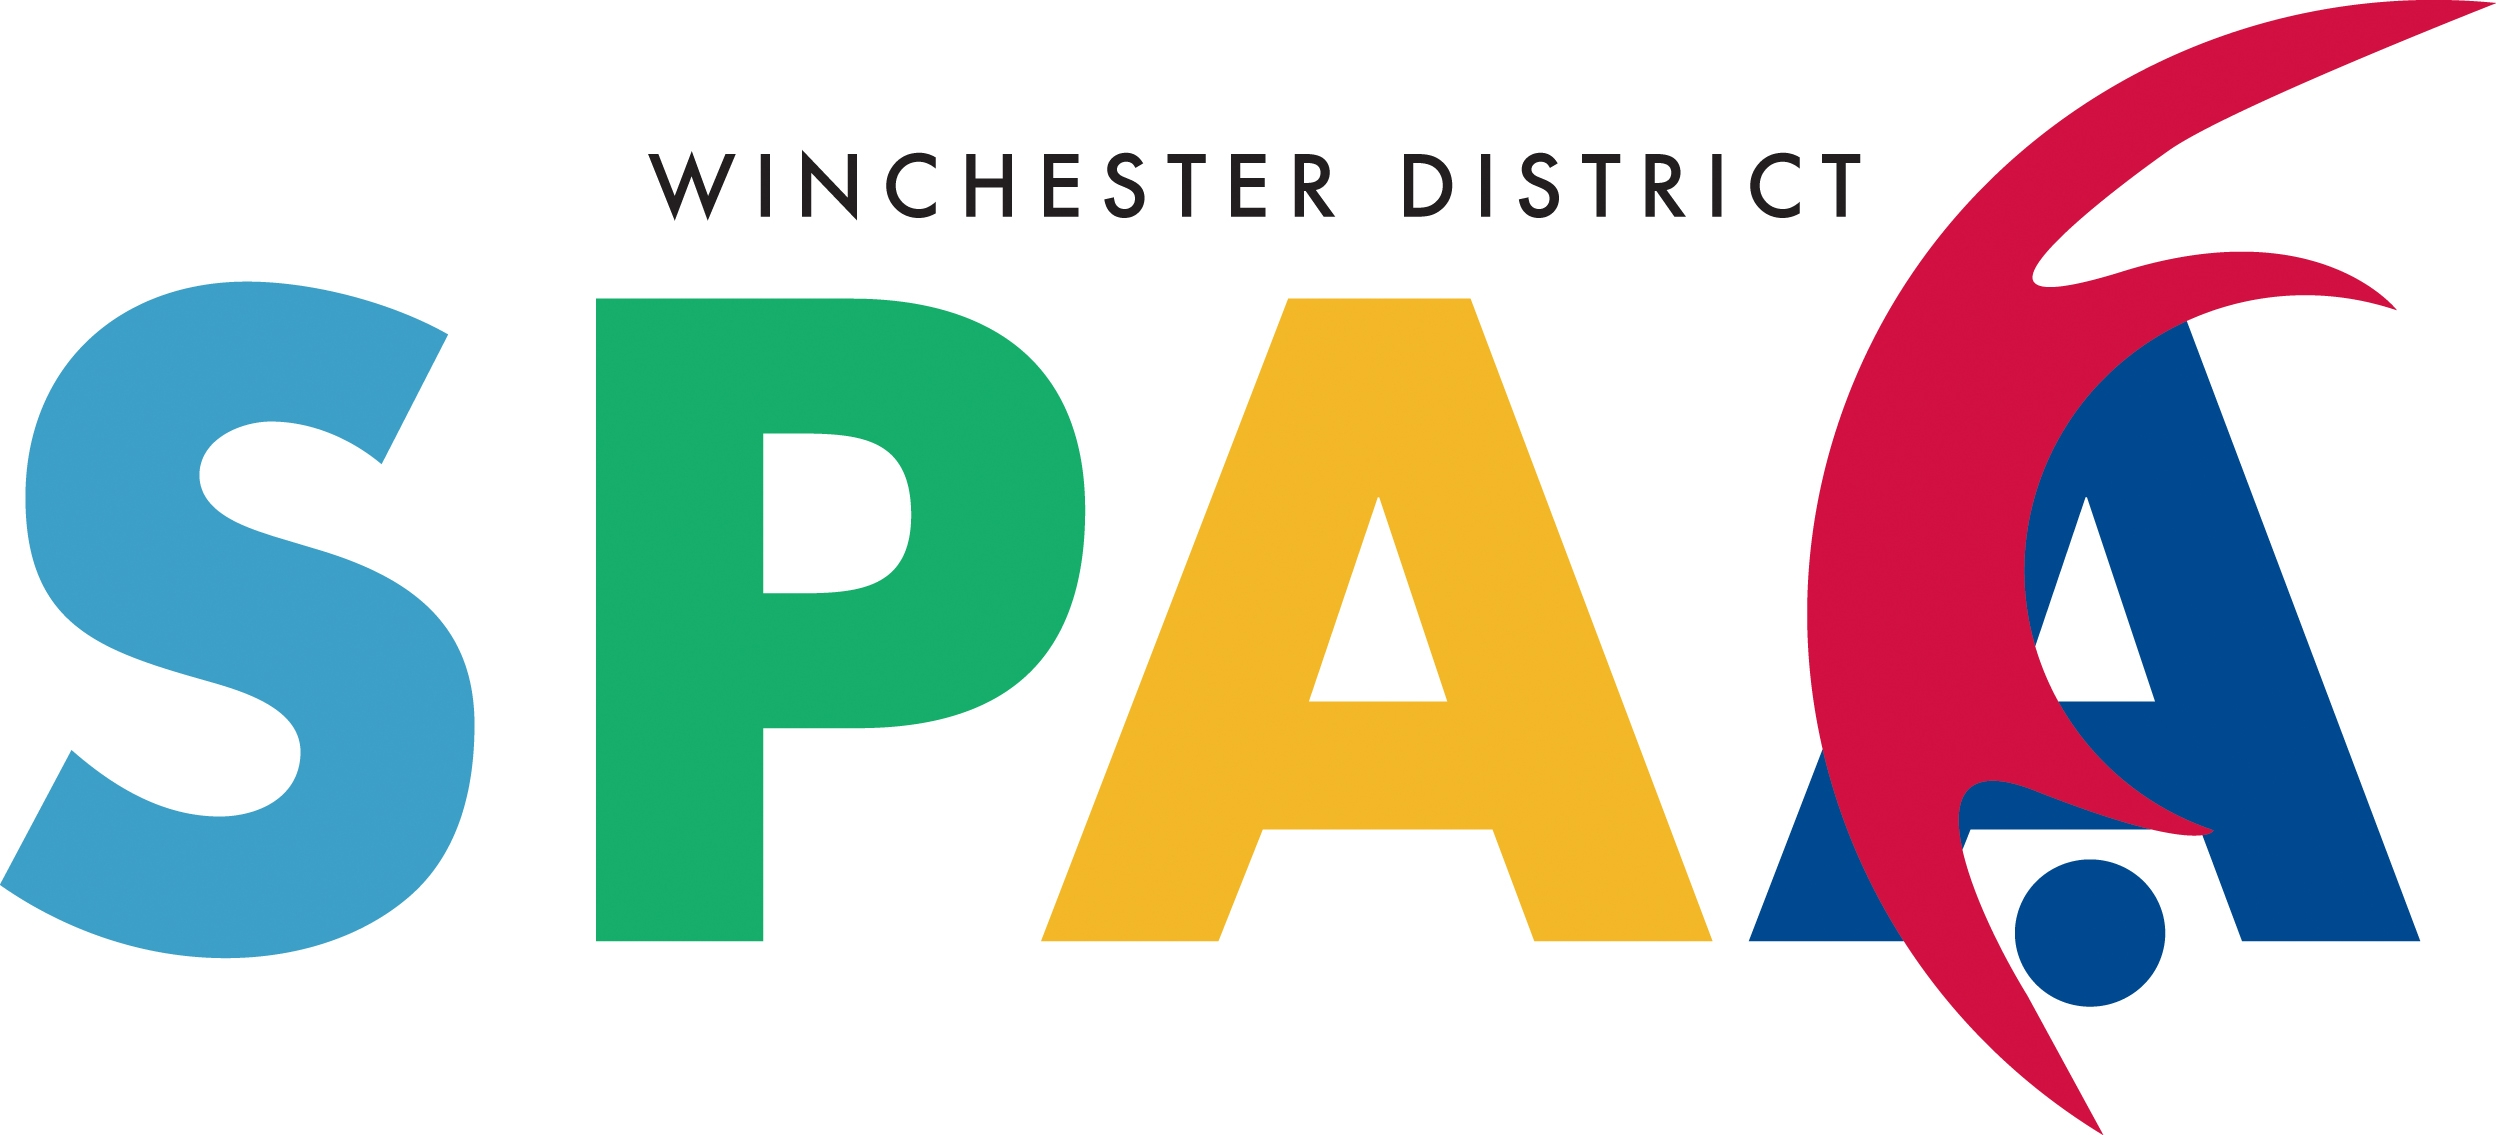 Winchester Sport & Physical Activity Alliance Logo